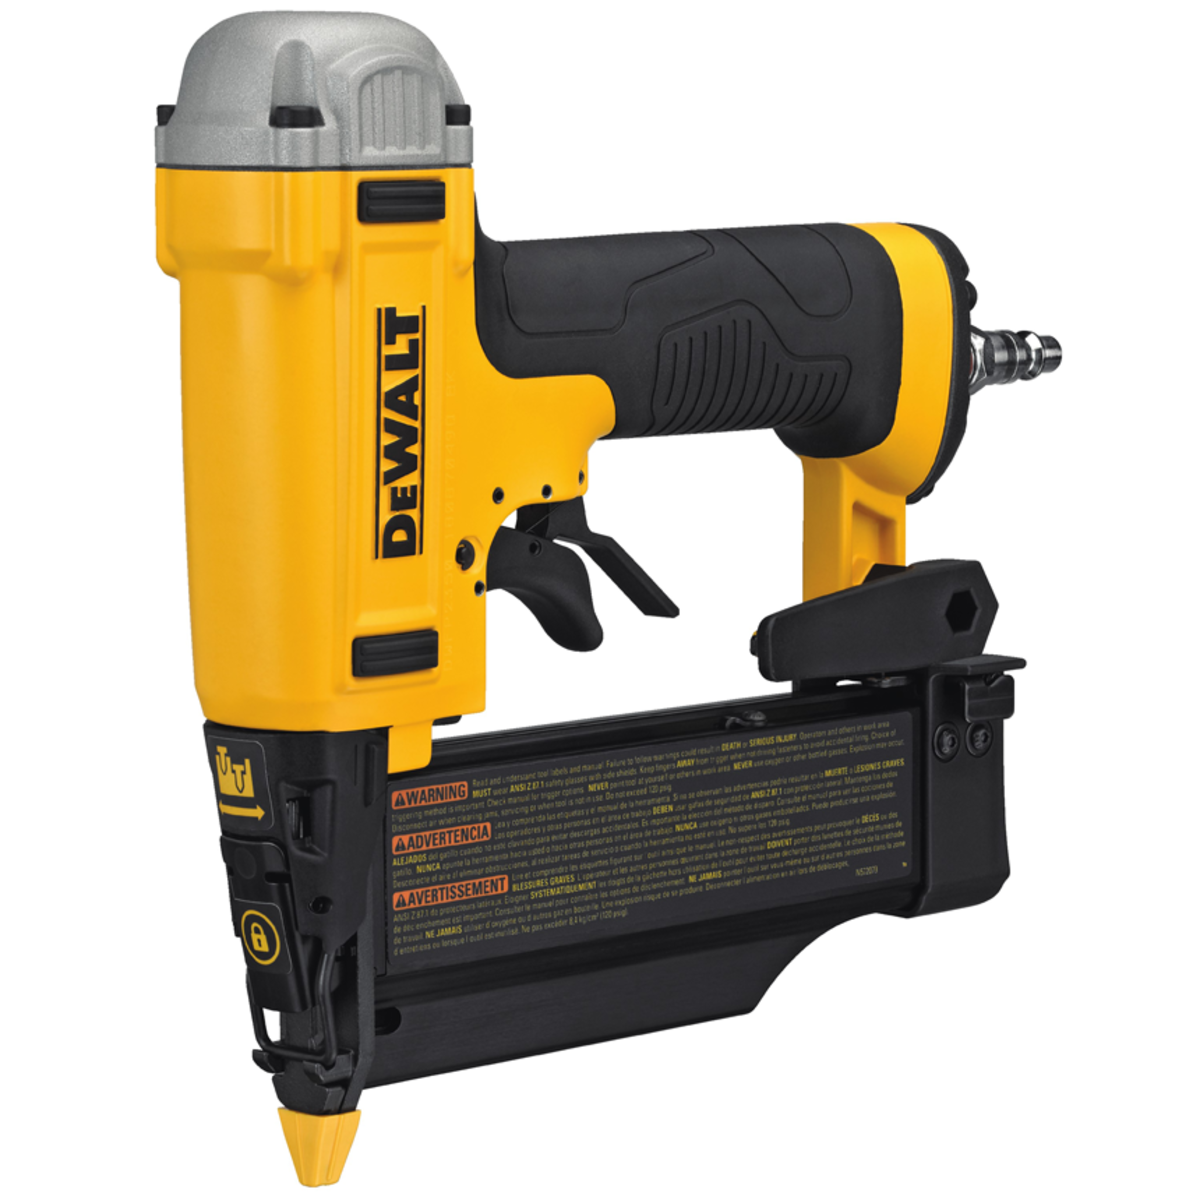 DeWalt-pin-nailer